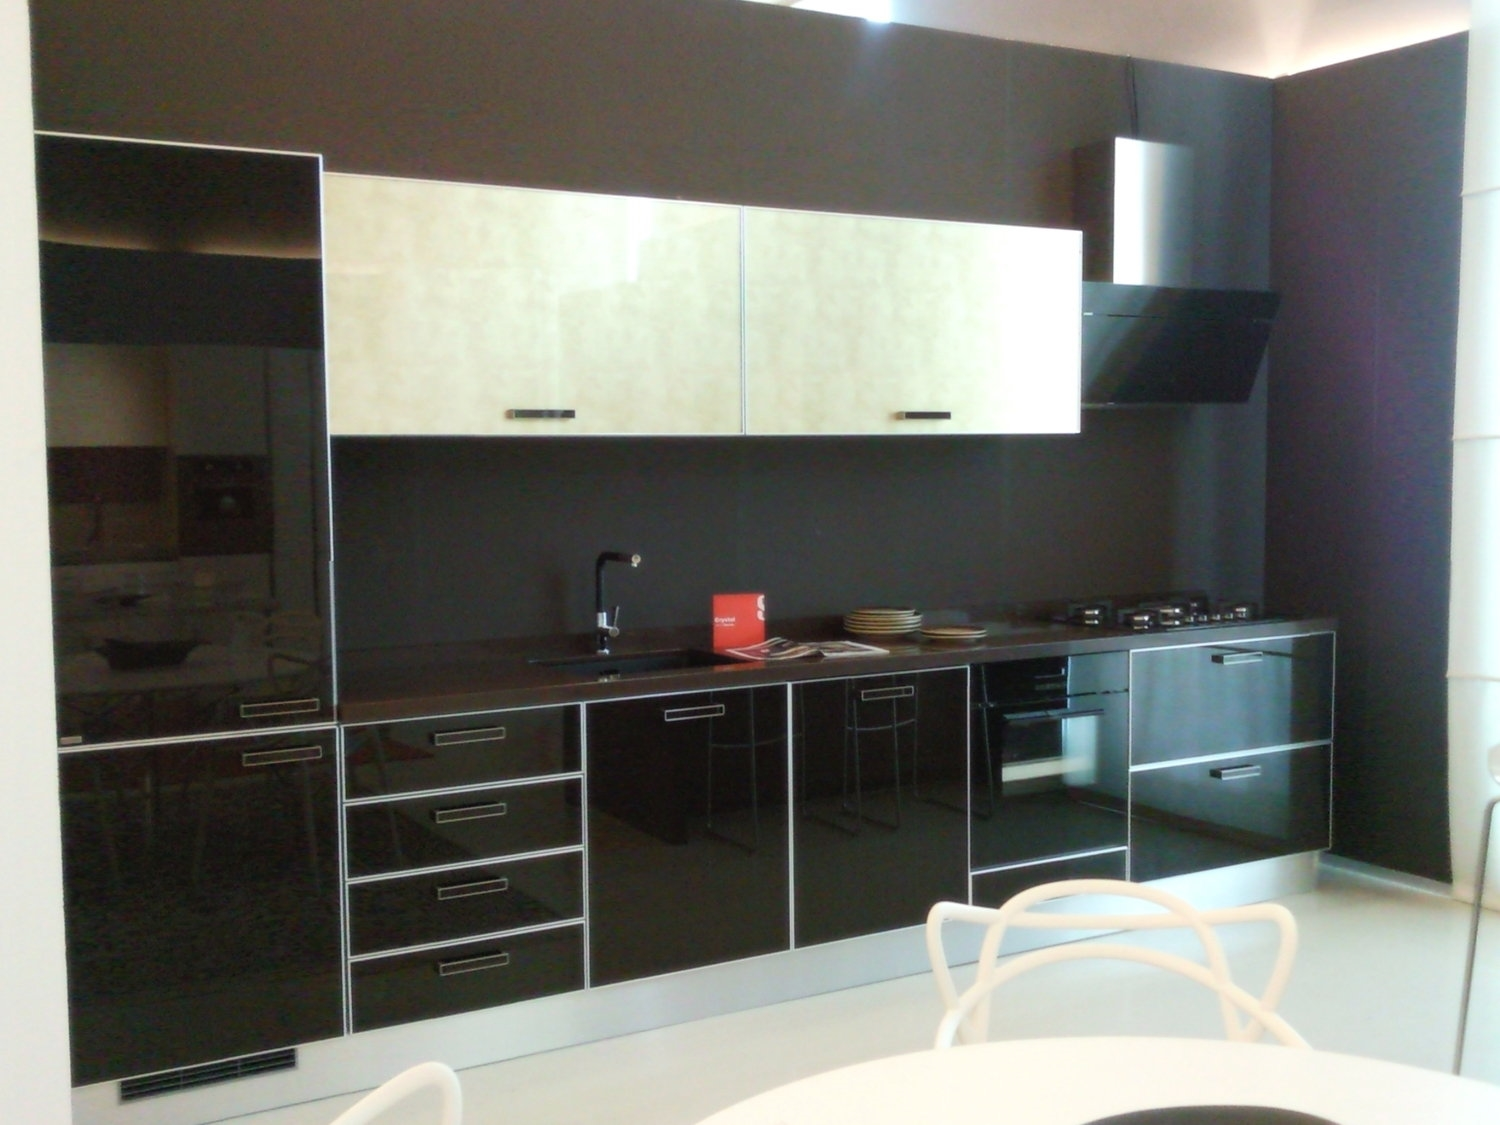 Cucine nere lucide pasionwe for with cucine nere lucide - Cucine nere lucide ...